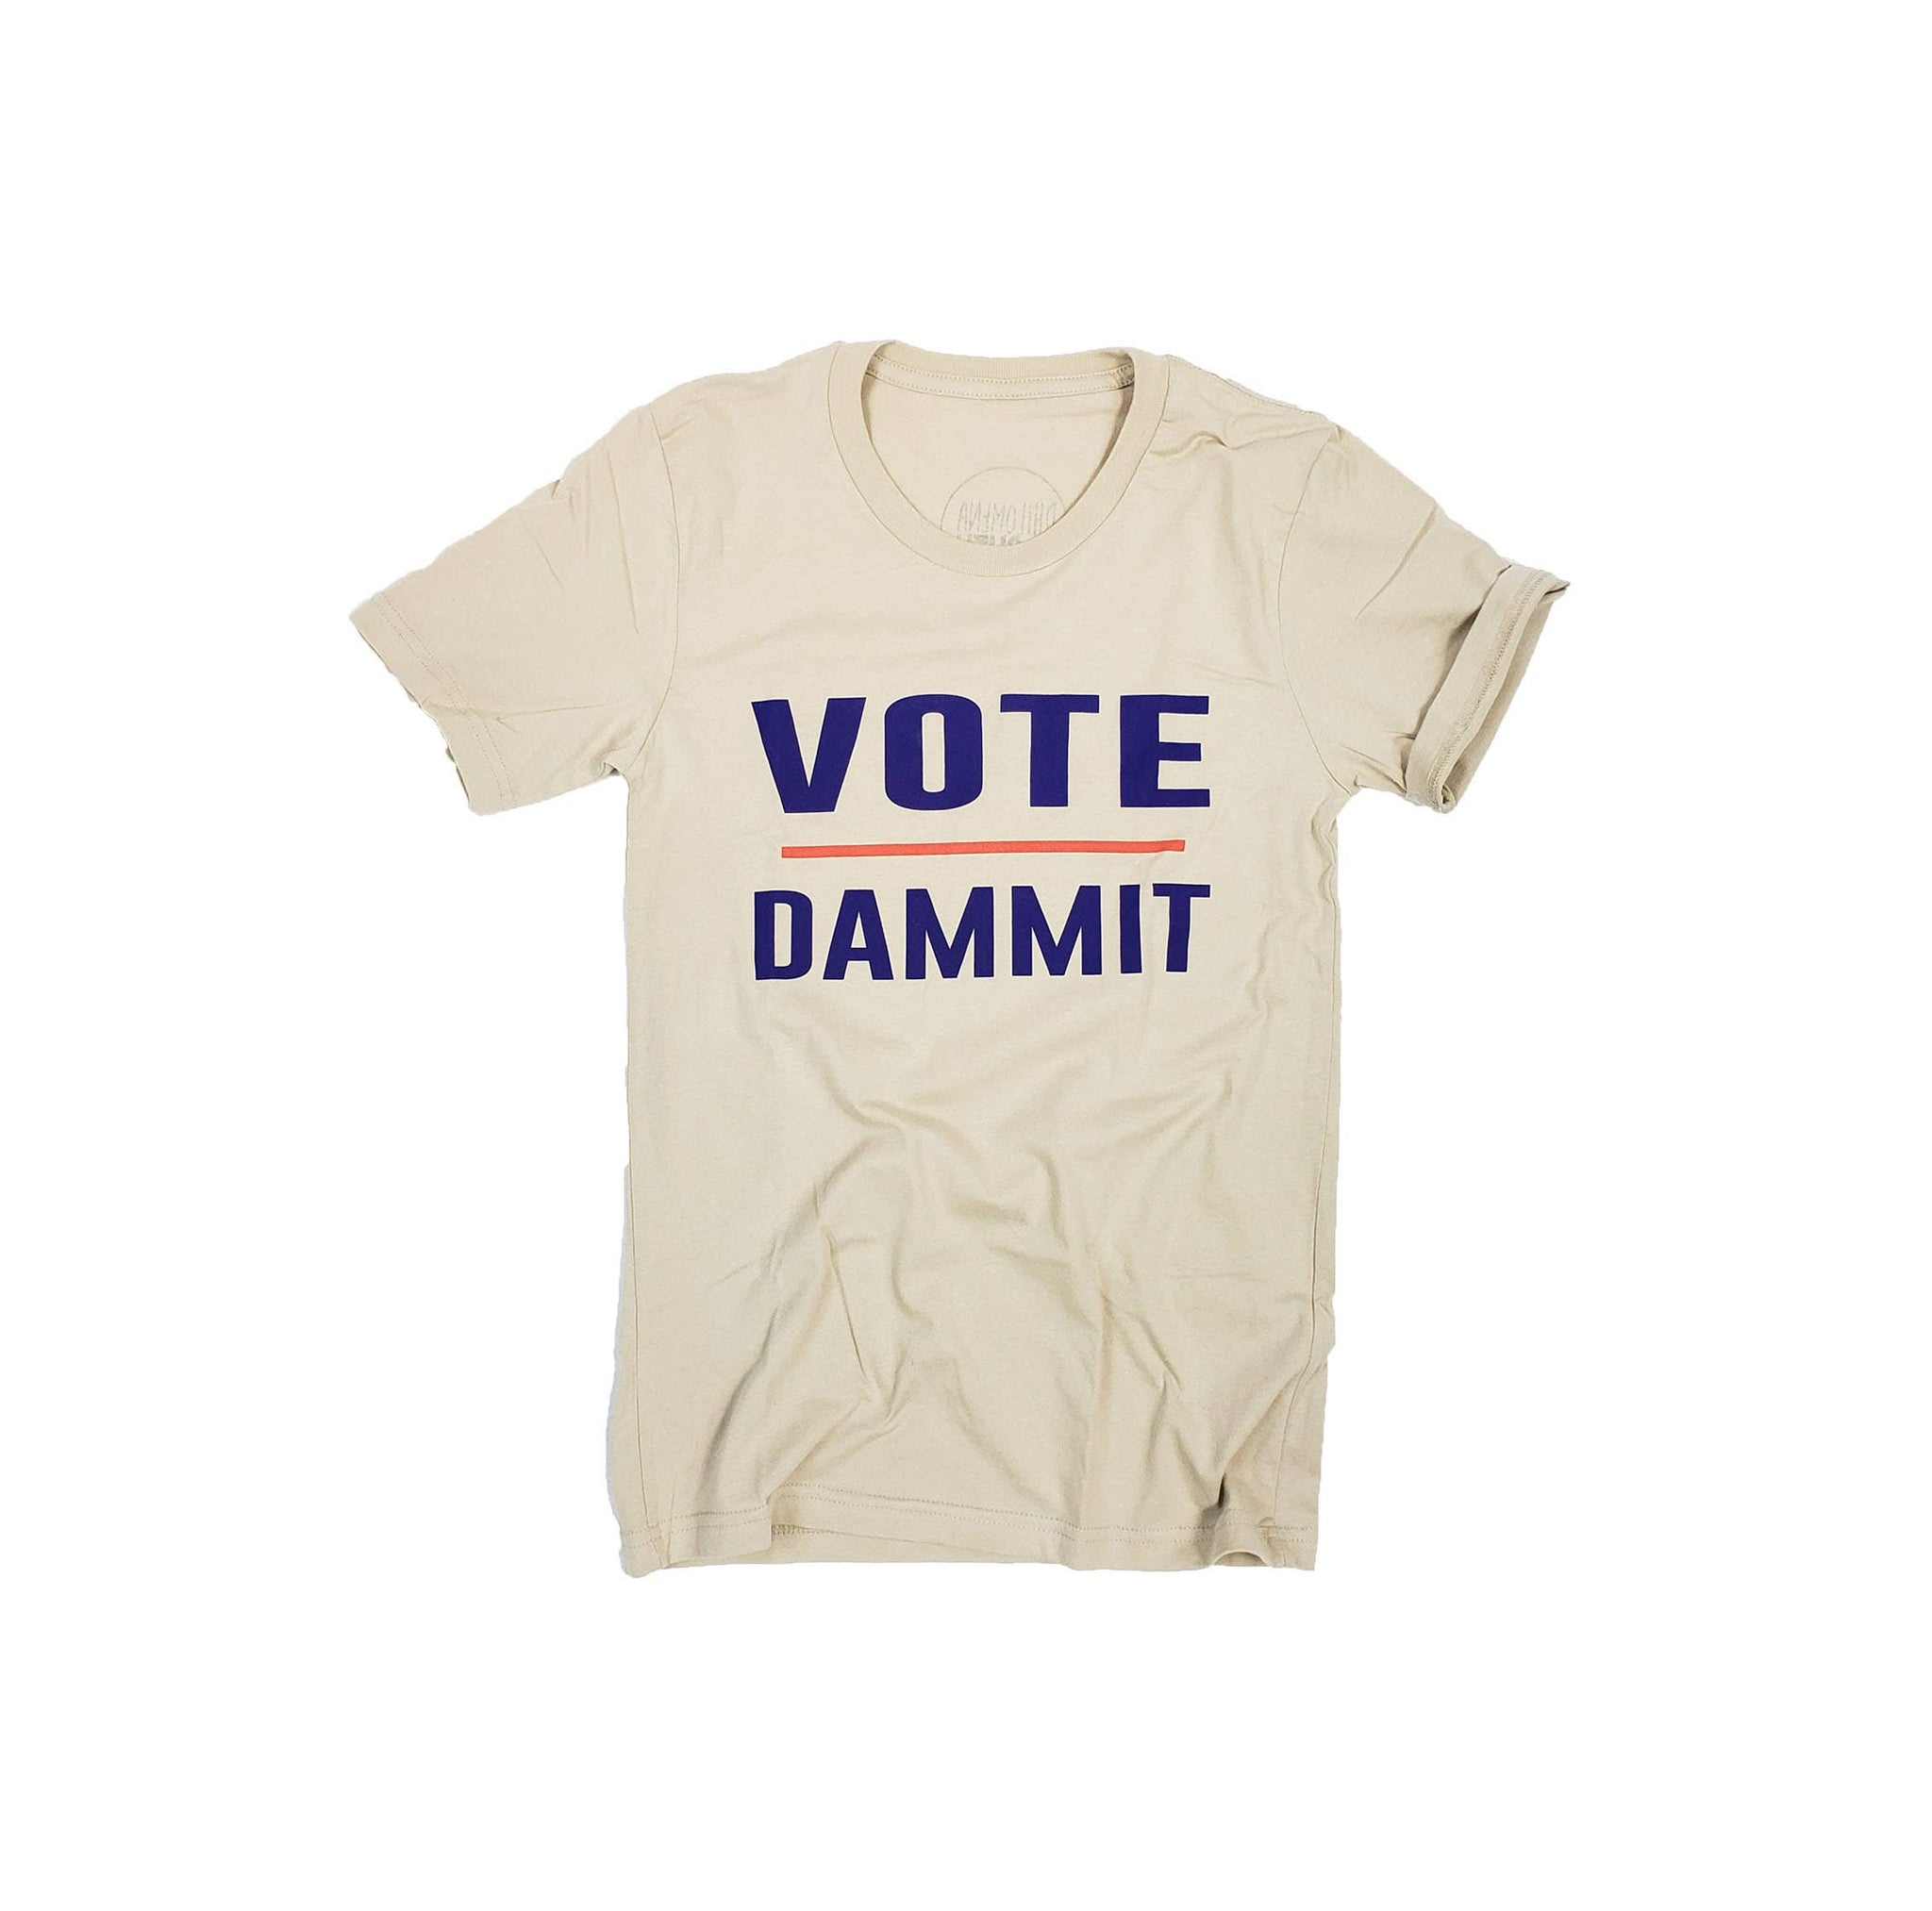 Vote Dammit t-shirt